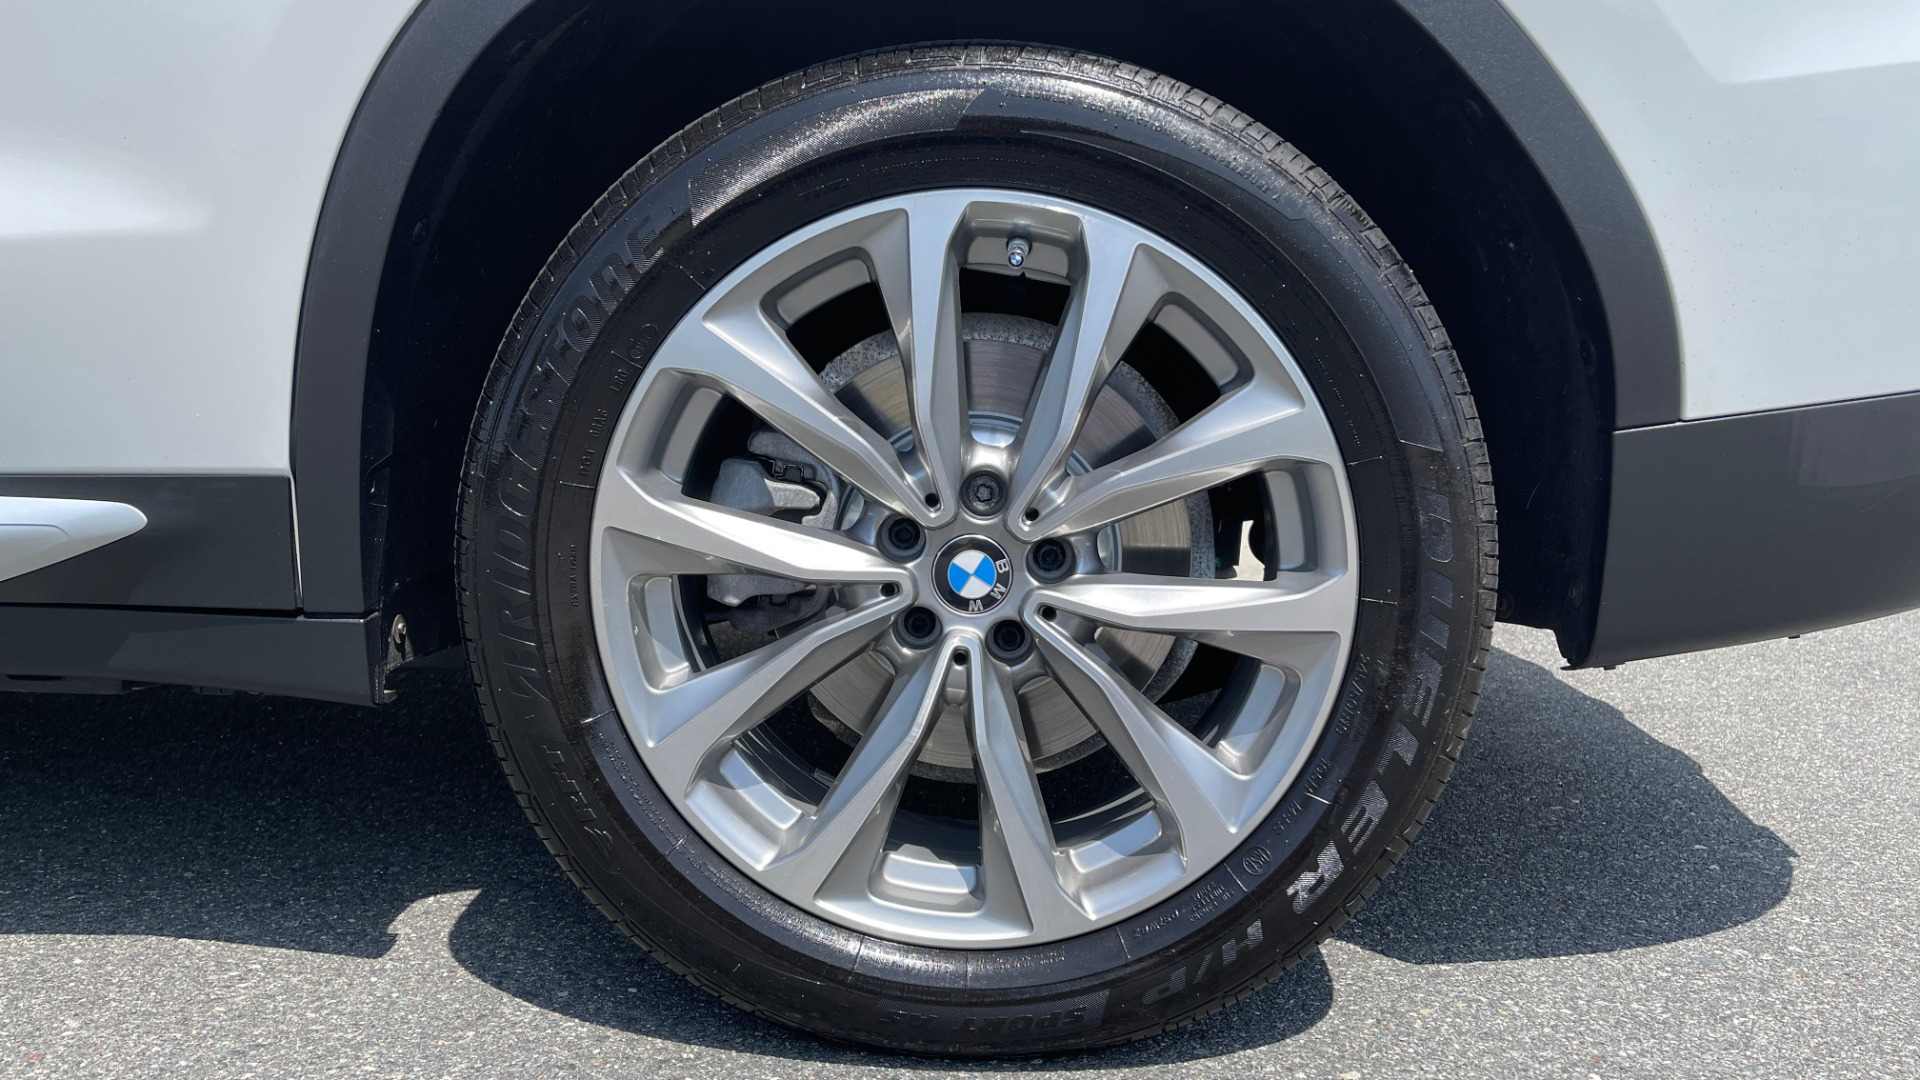 Used 2018 BMW X3 XDRIVE30I PREMIUM / NAV / DRVR ASST / CONV PKG / SUNROOF / REARVIEW for sale $32,695 at Formula Imports in Charlotte NC 28227 87